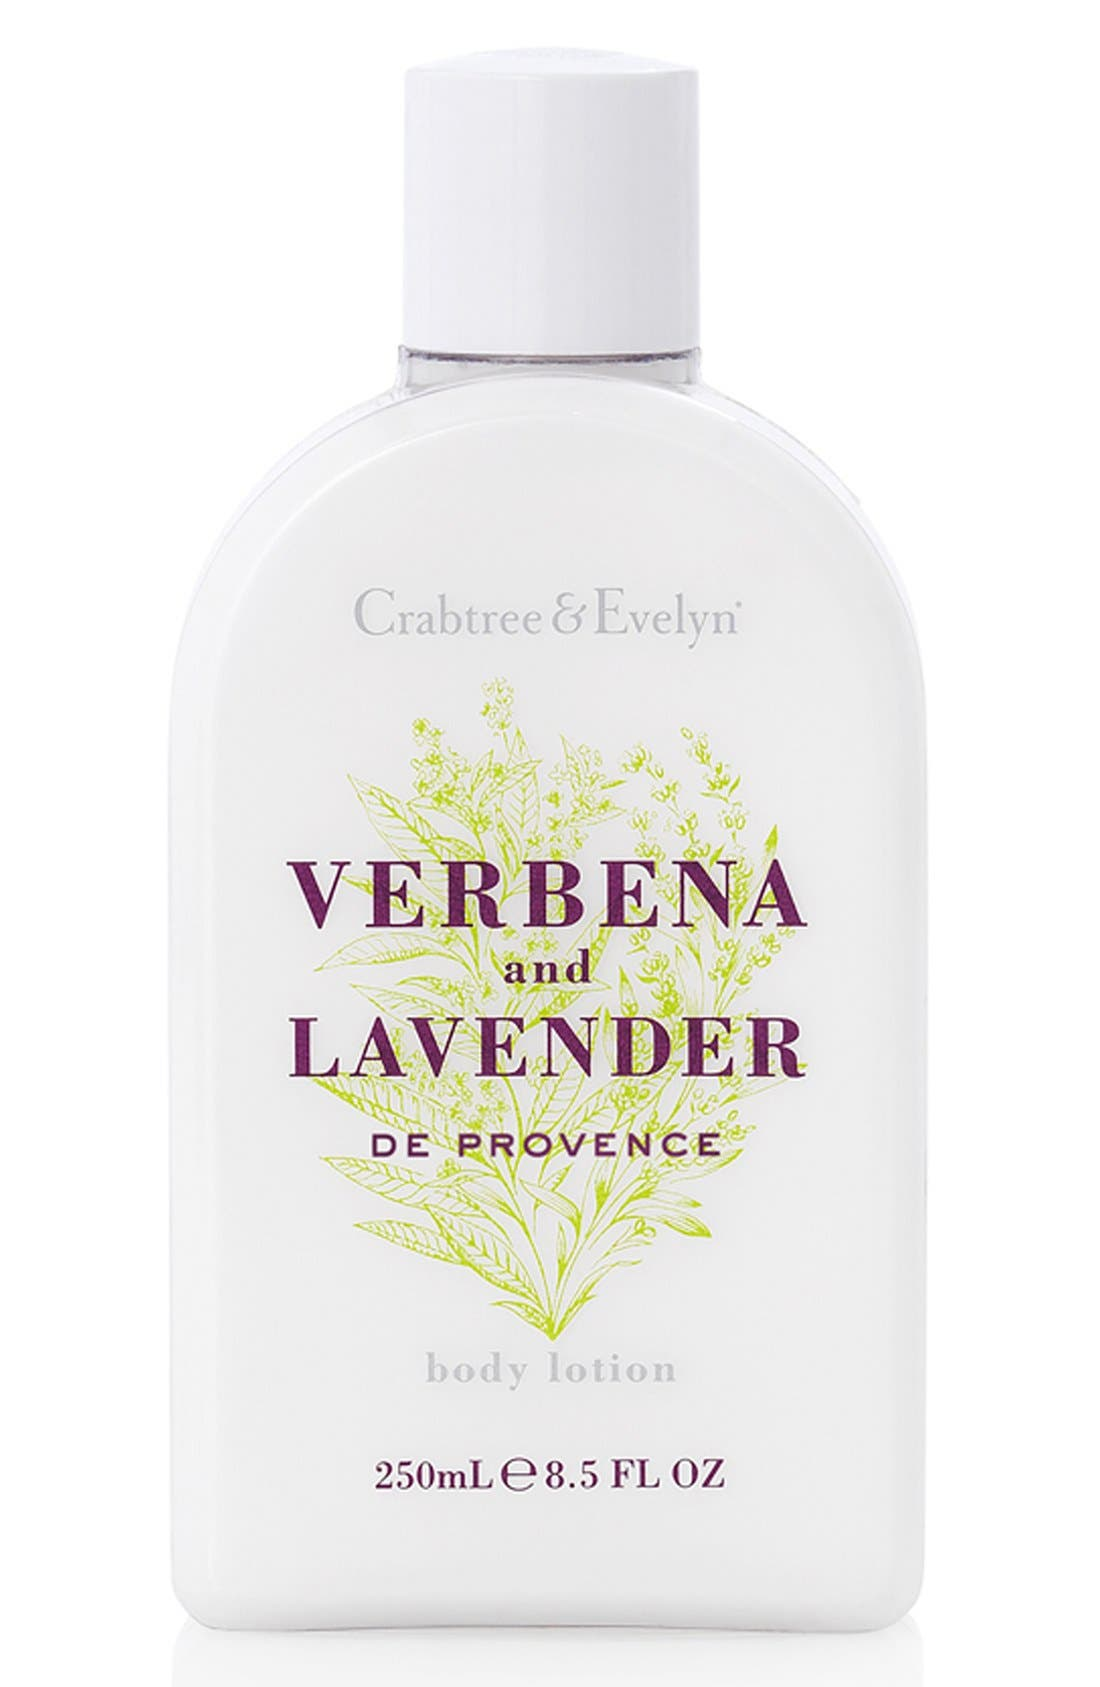 Crabtree & Evelyn 'Verbena & Lavender de Provence' Body Lotion (Nordstrom Exclusive)